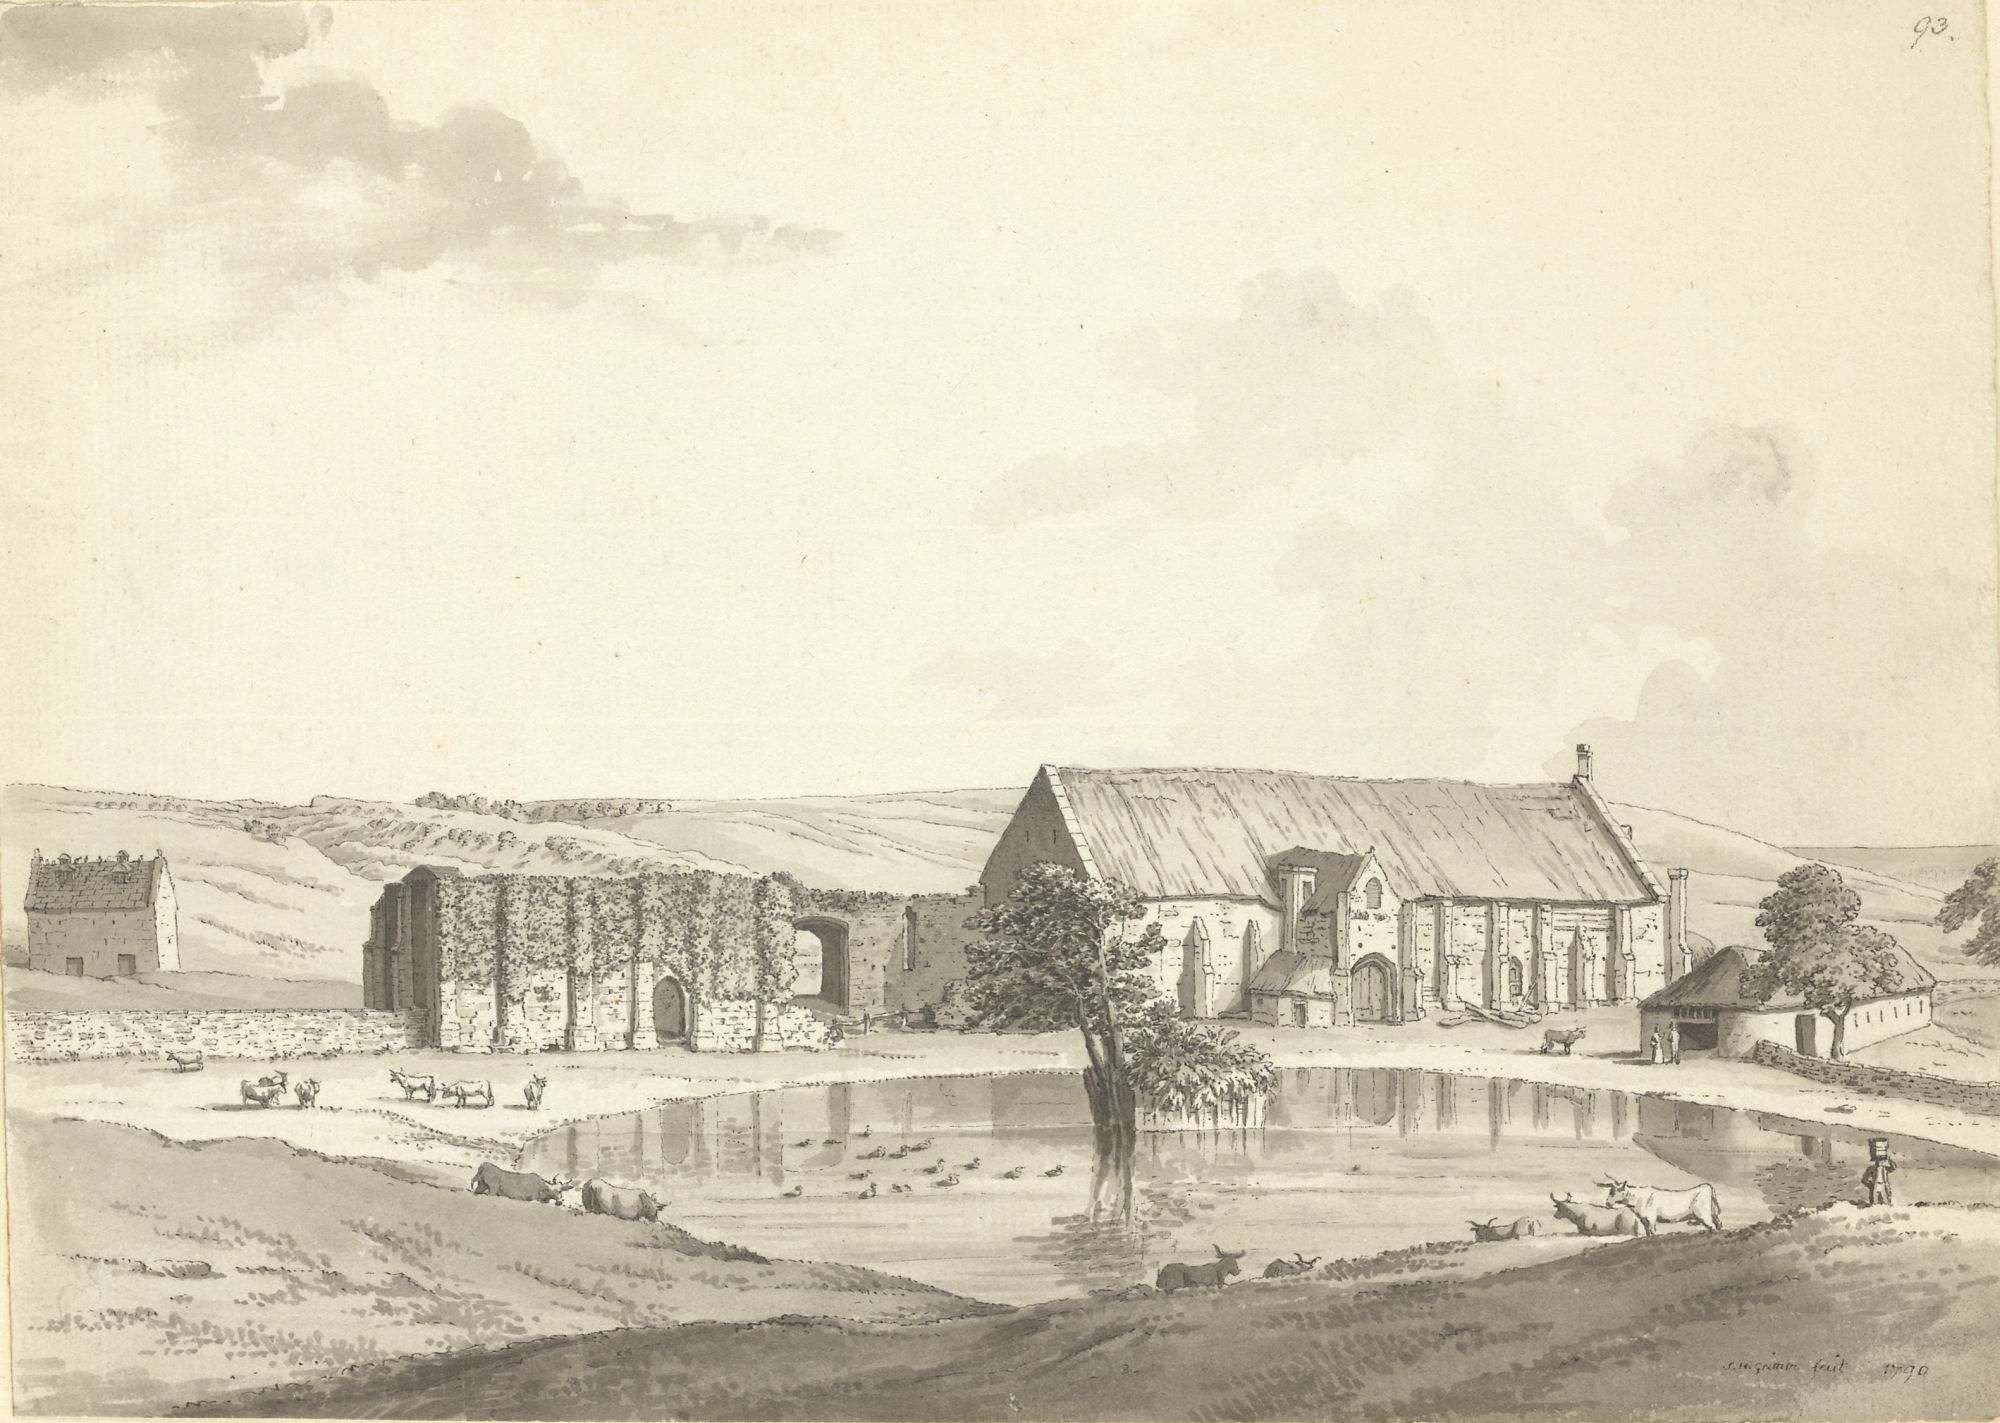 Samuel Hieronymus Grimm, The old tithe barn at Abbotsbury, c.1770–1790, Add. MS 15537, f.93